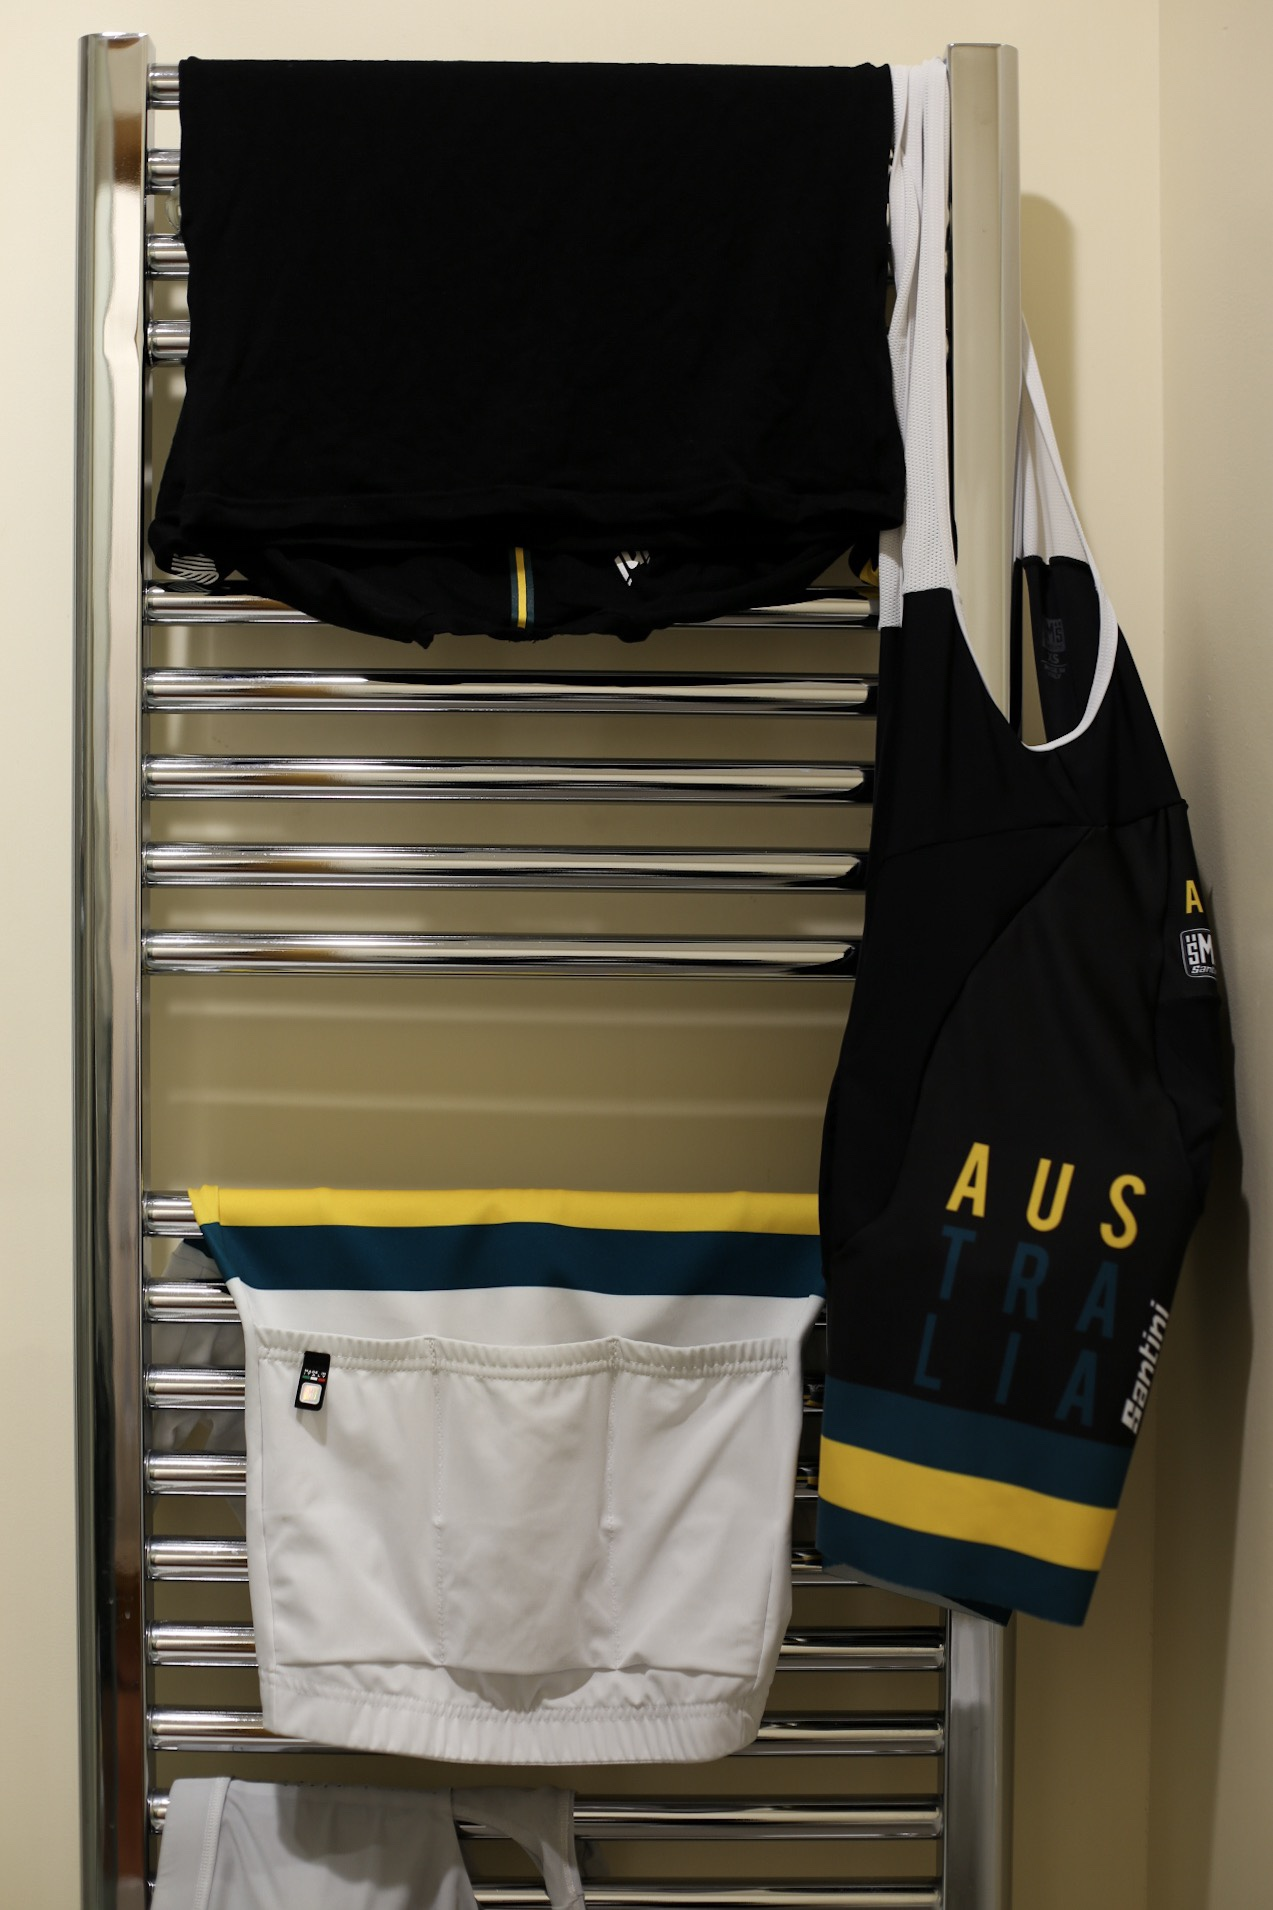 Wearing and washing - the uniform 24 hours before they raced.